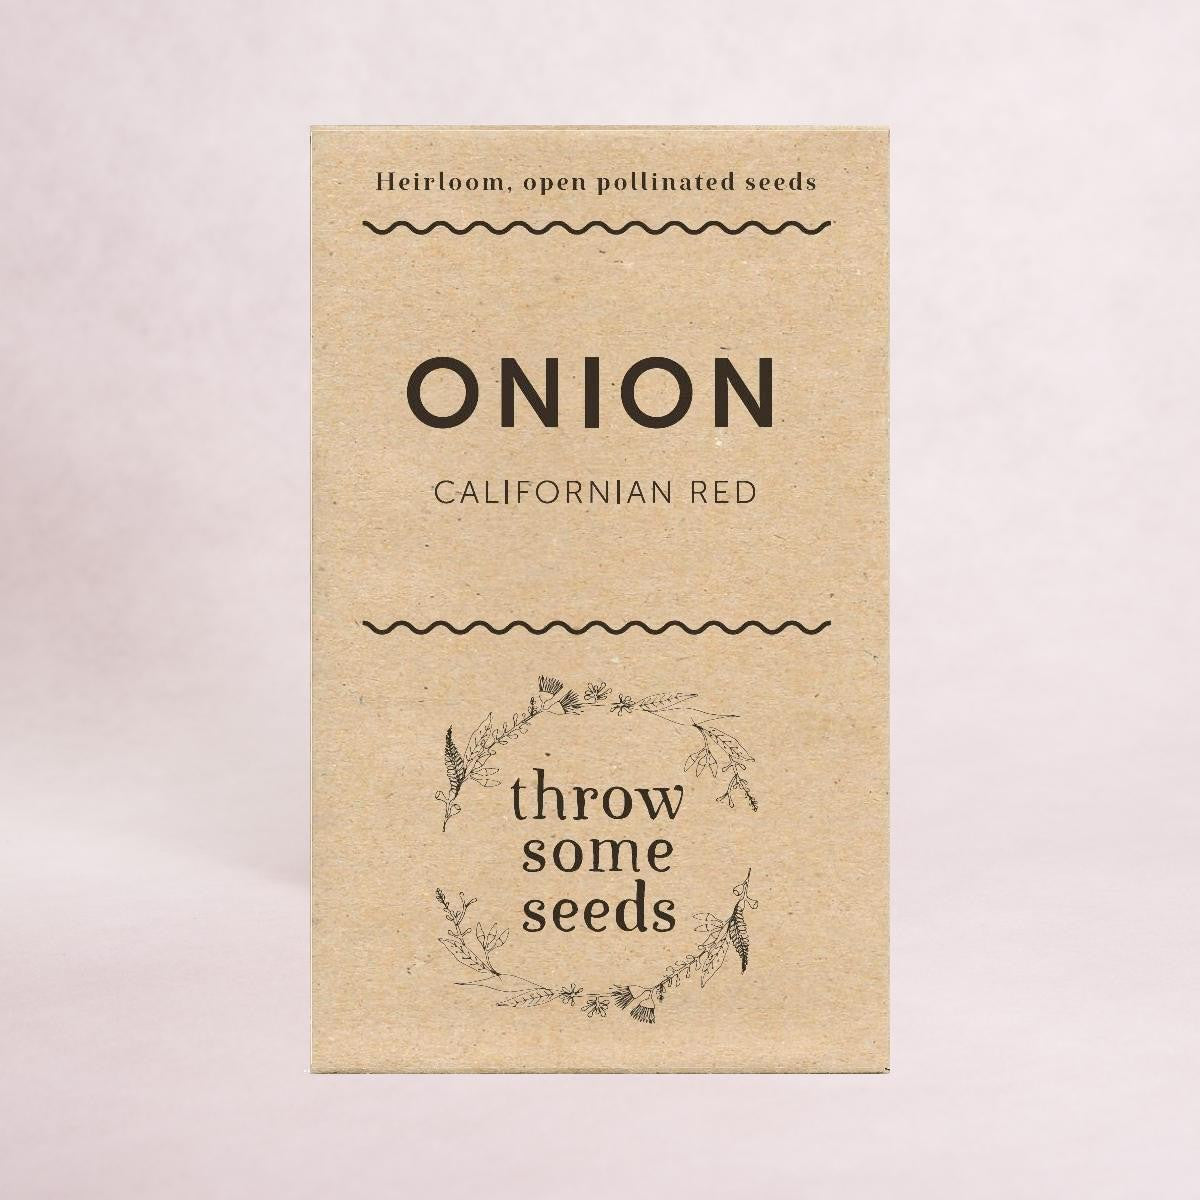 Onion (Californian Red) - Heirloom Seeds - Throw Some Seeds